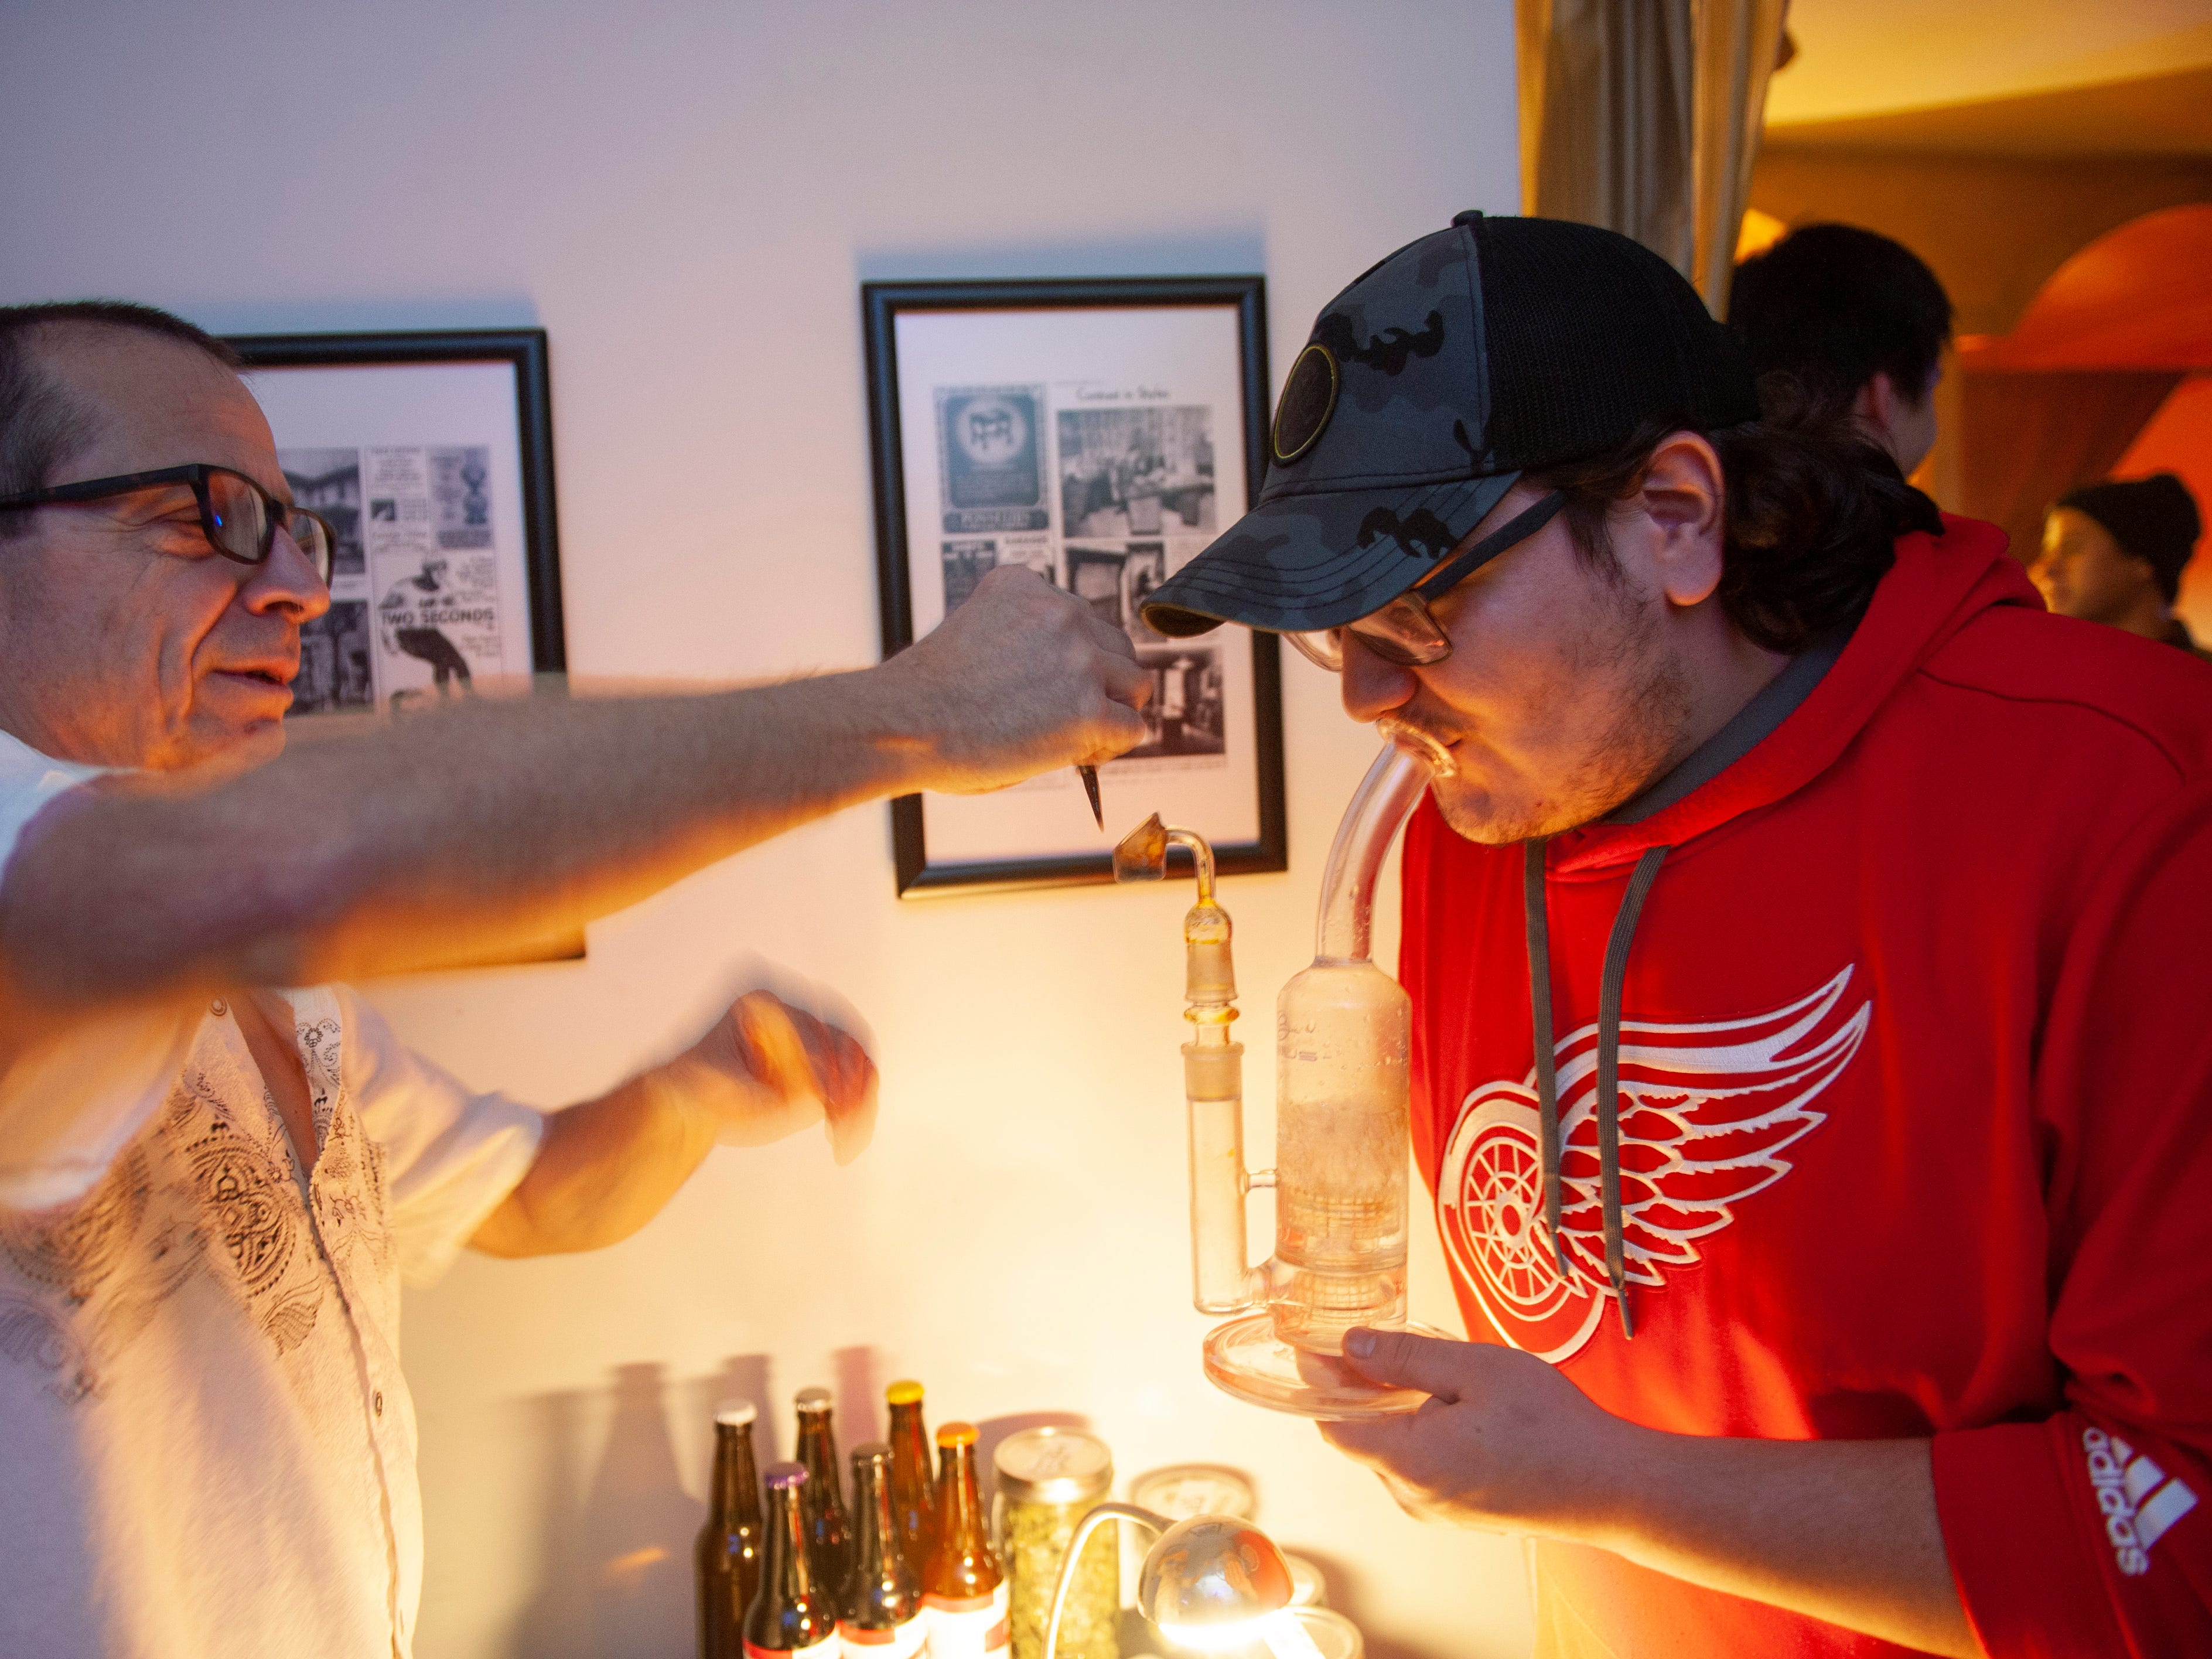 """Cannabis entrepreneur Mike, left, offers a free """"dab"""" to Peter of Oakland Township (both withheld their last names) during """"The Art of Cannabis"""" event at the Cannabis Counsel in Detroit."""